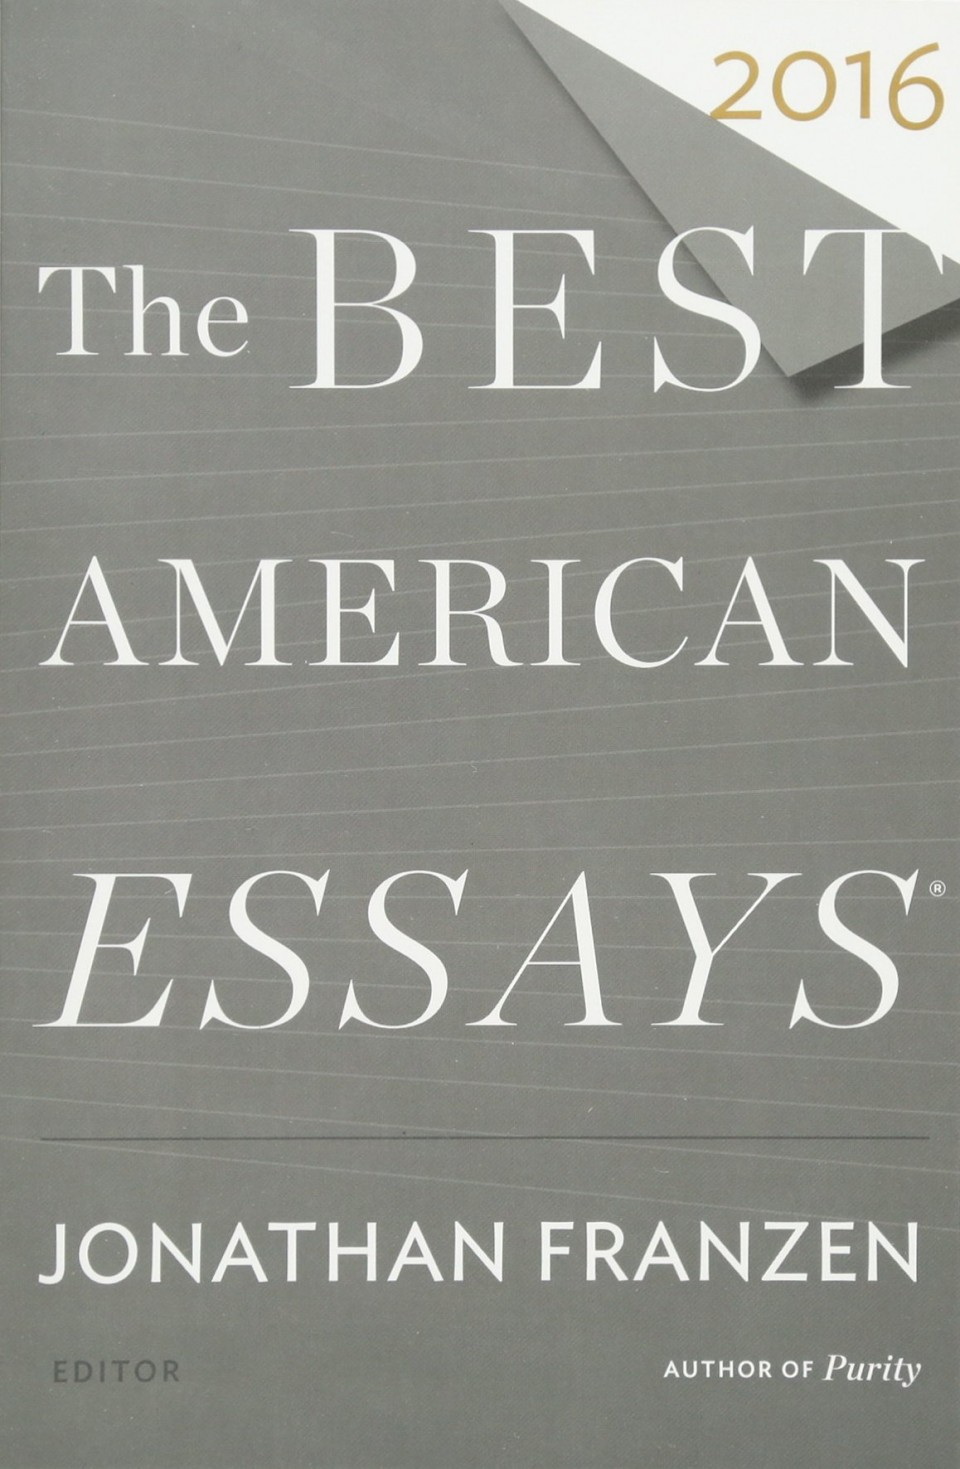 005 The Best American Essays Essay Example Wonderful 2018 Pdf 2017 Table Of Contents 2015 Free 960